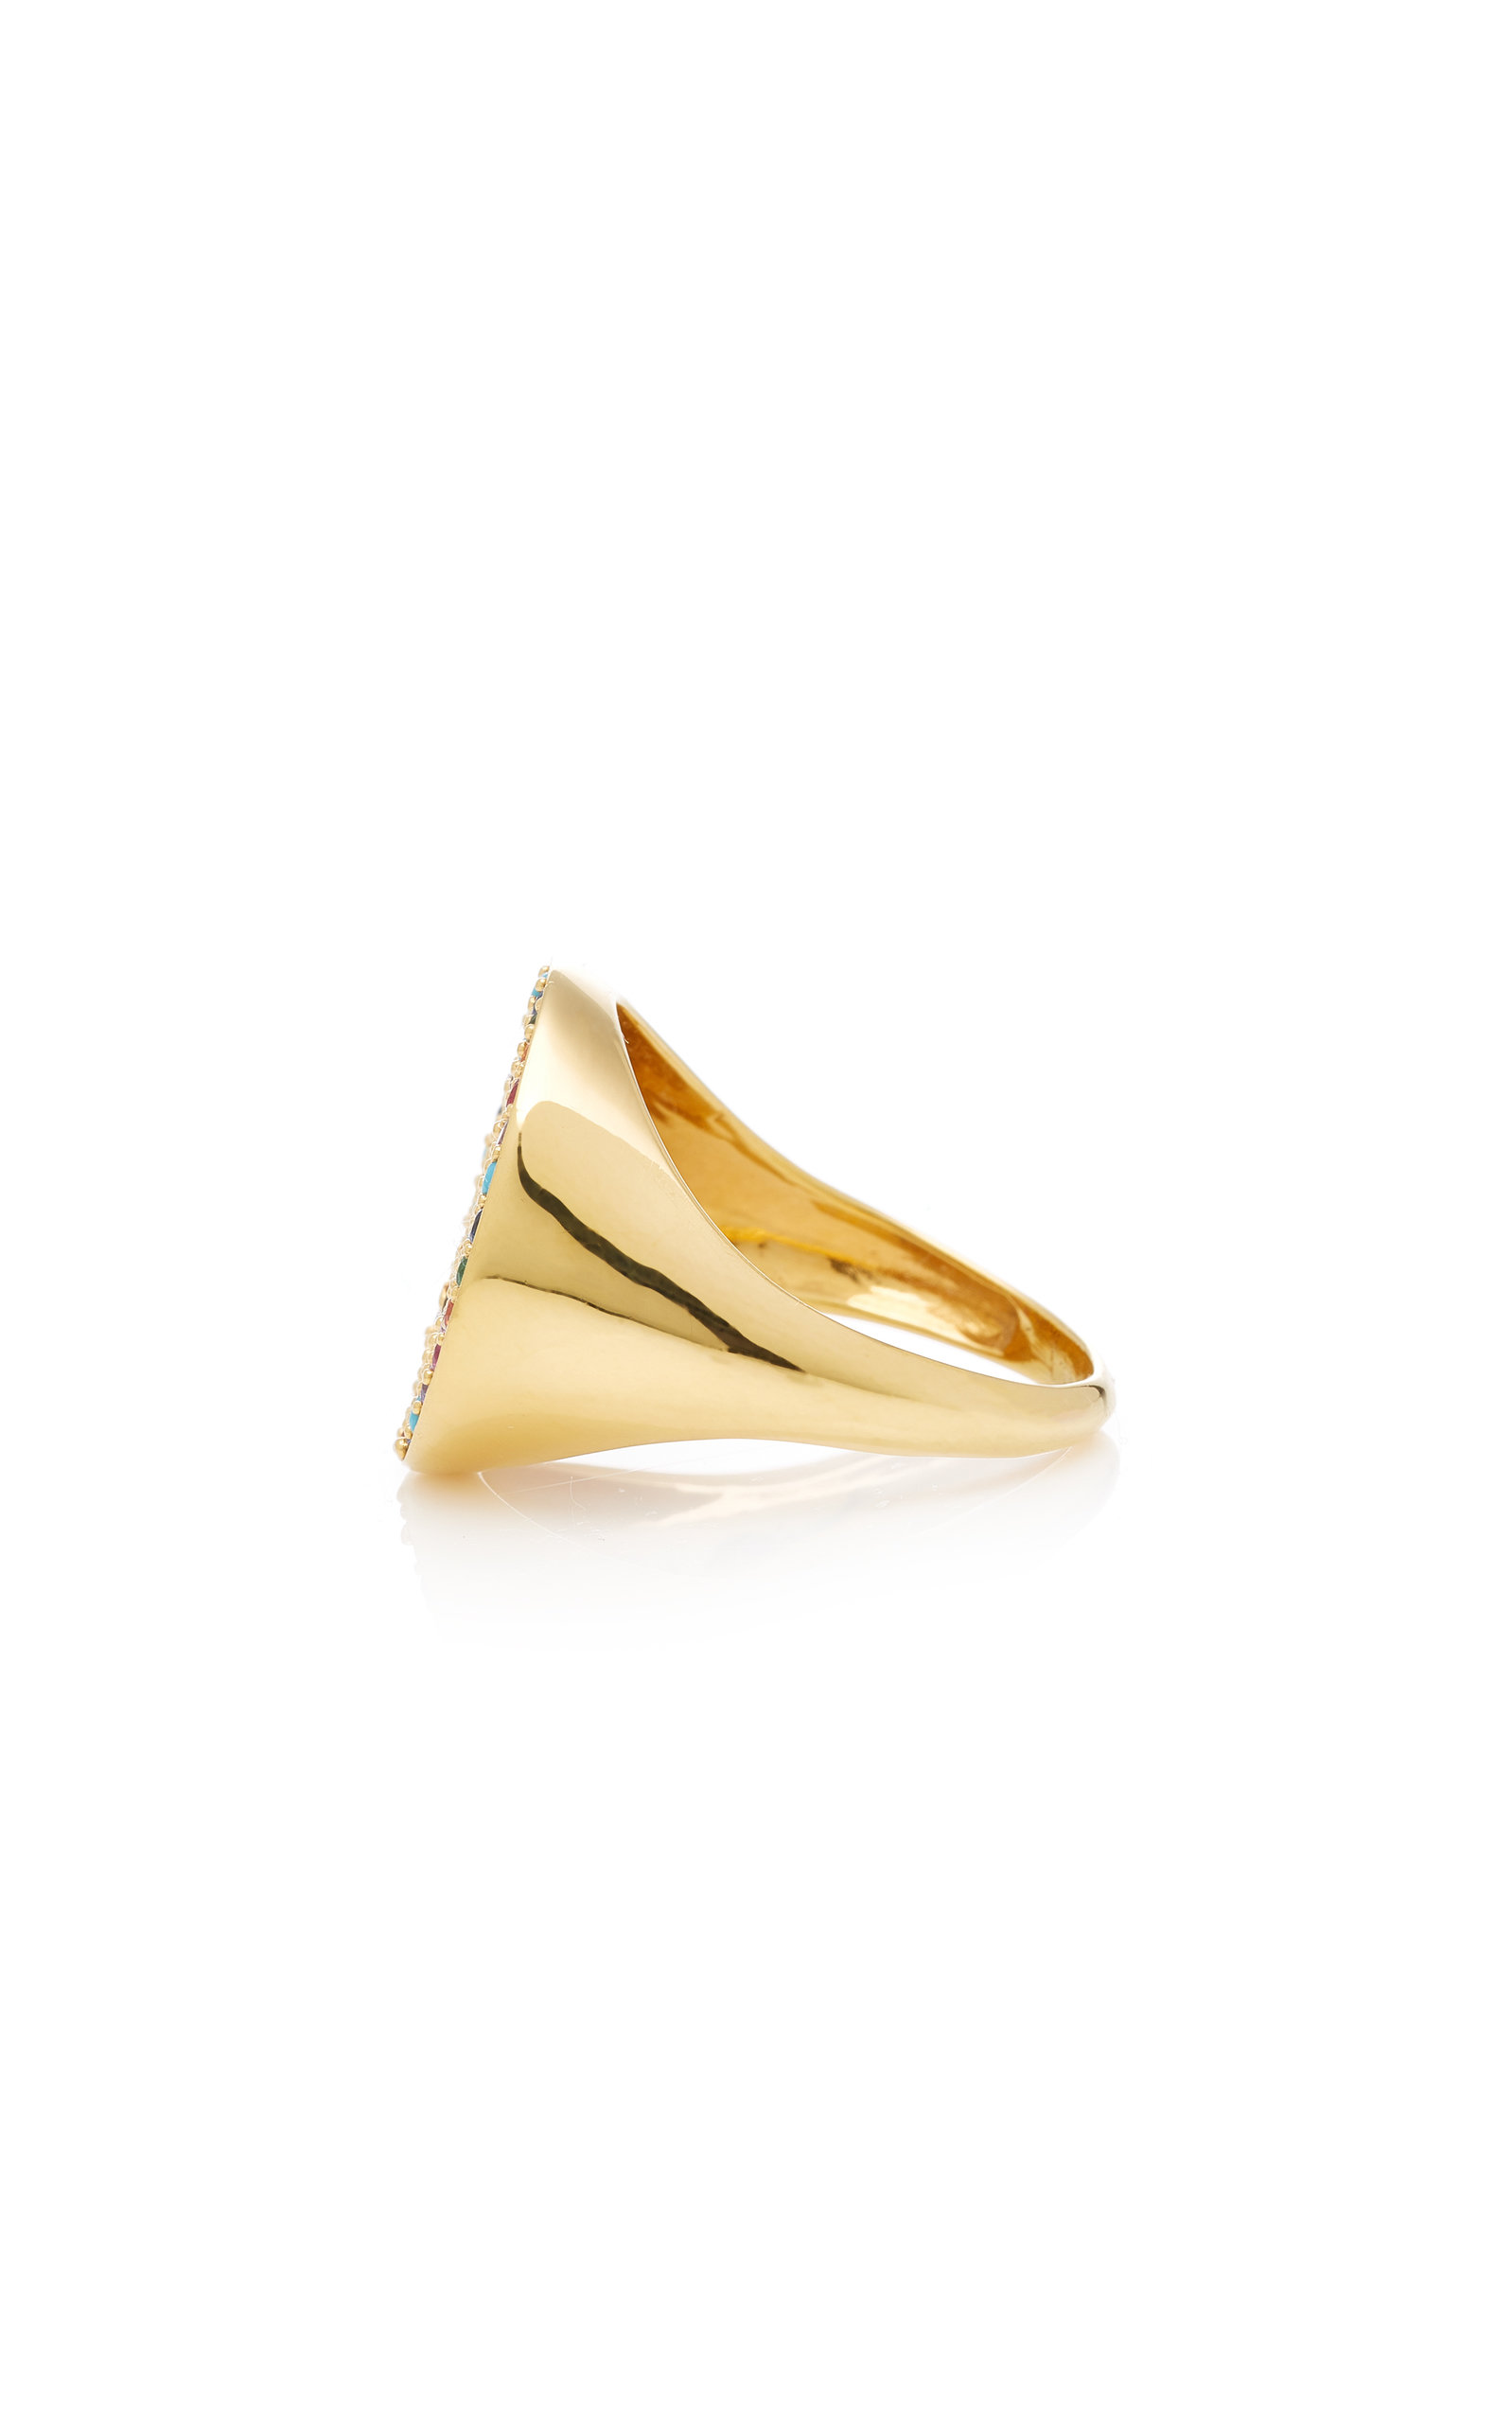 Cheap Buy Tribal Gold Plated-Brass and Cubic Zirconia Ring Joanna Laura Constantine Fashionable Online Outlet Explore Clearance 2018 Deals Cheap Online JDb3iRF